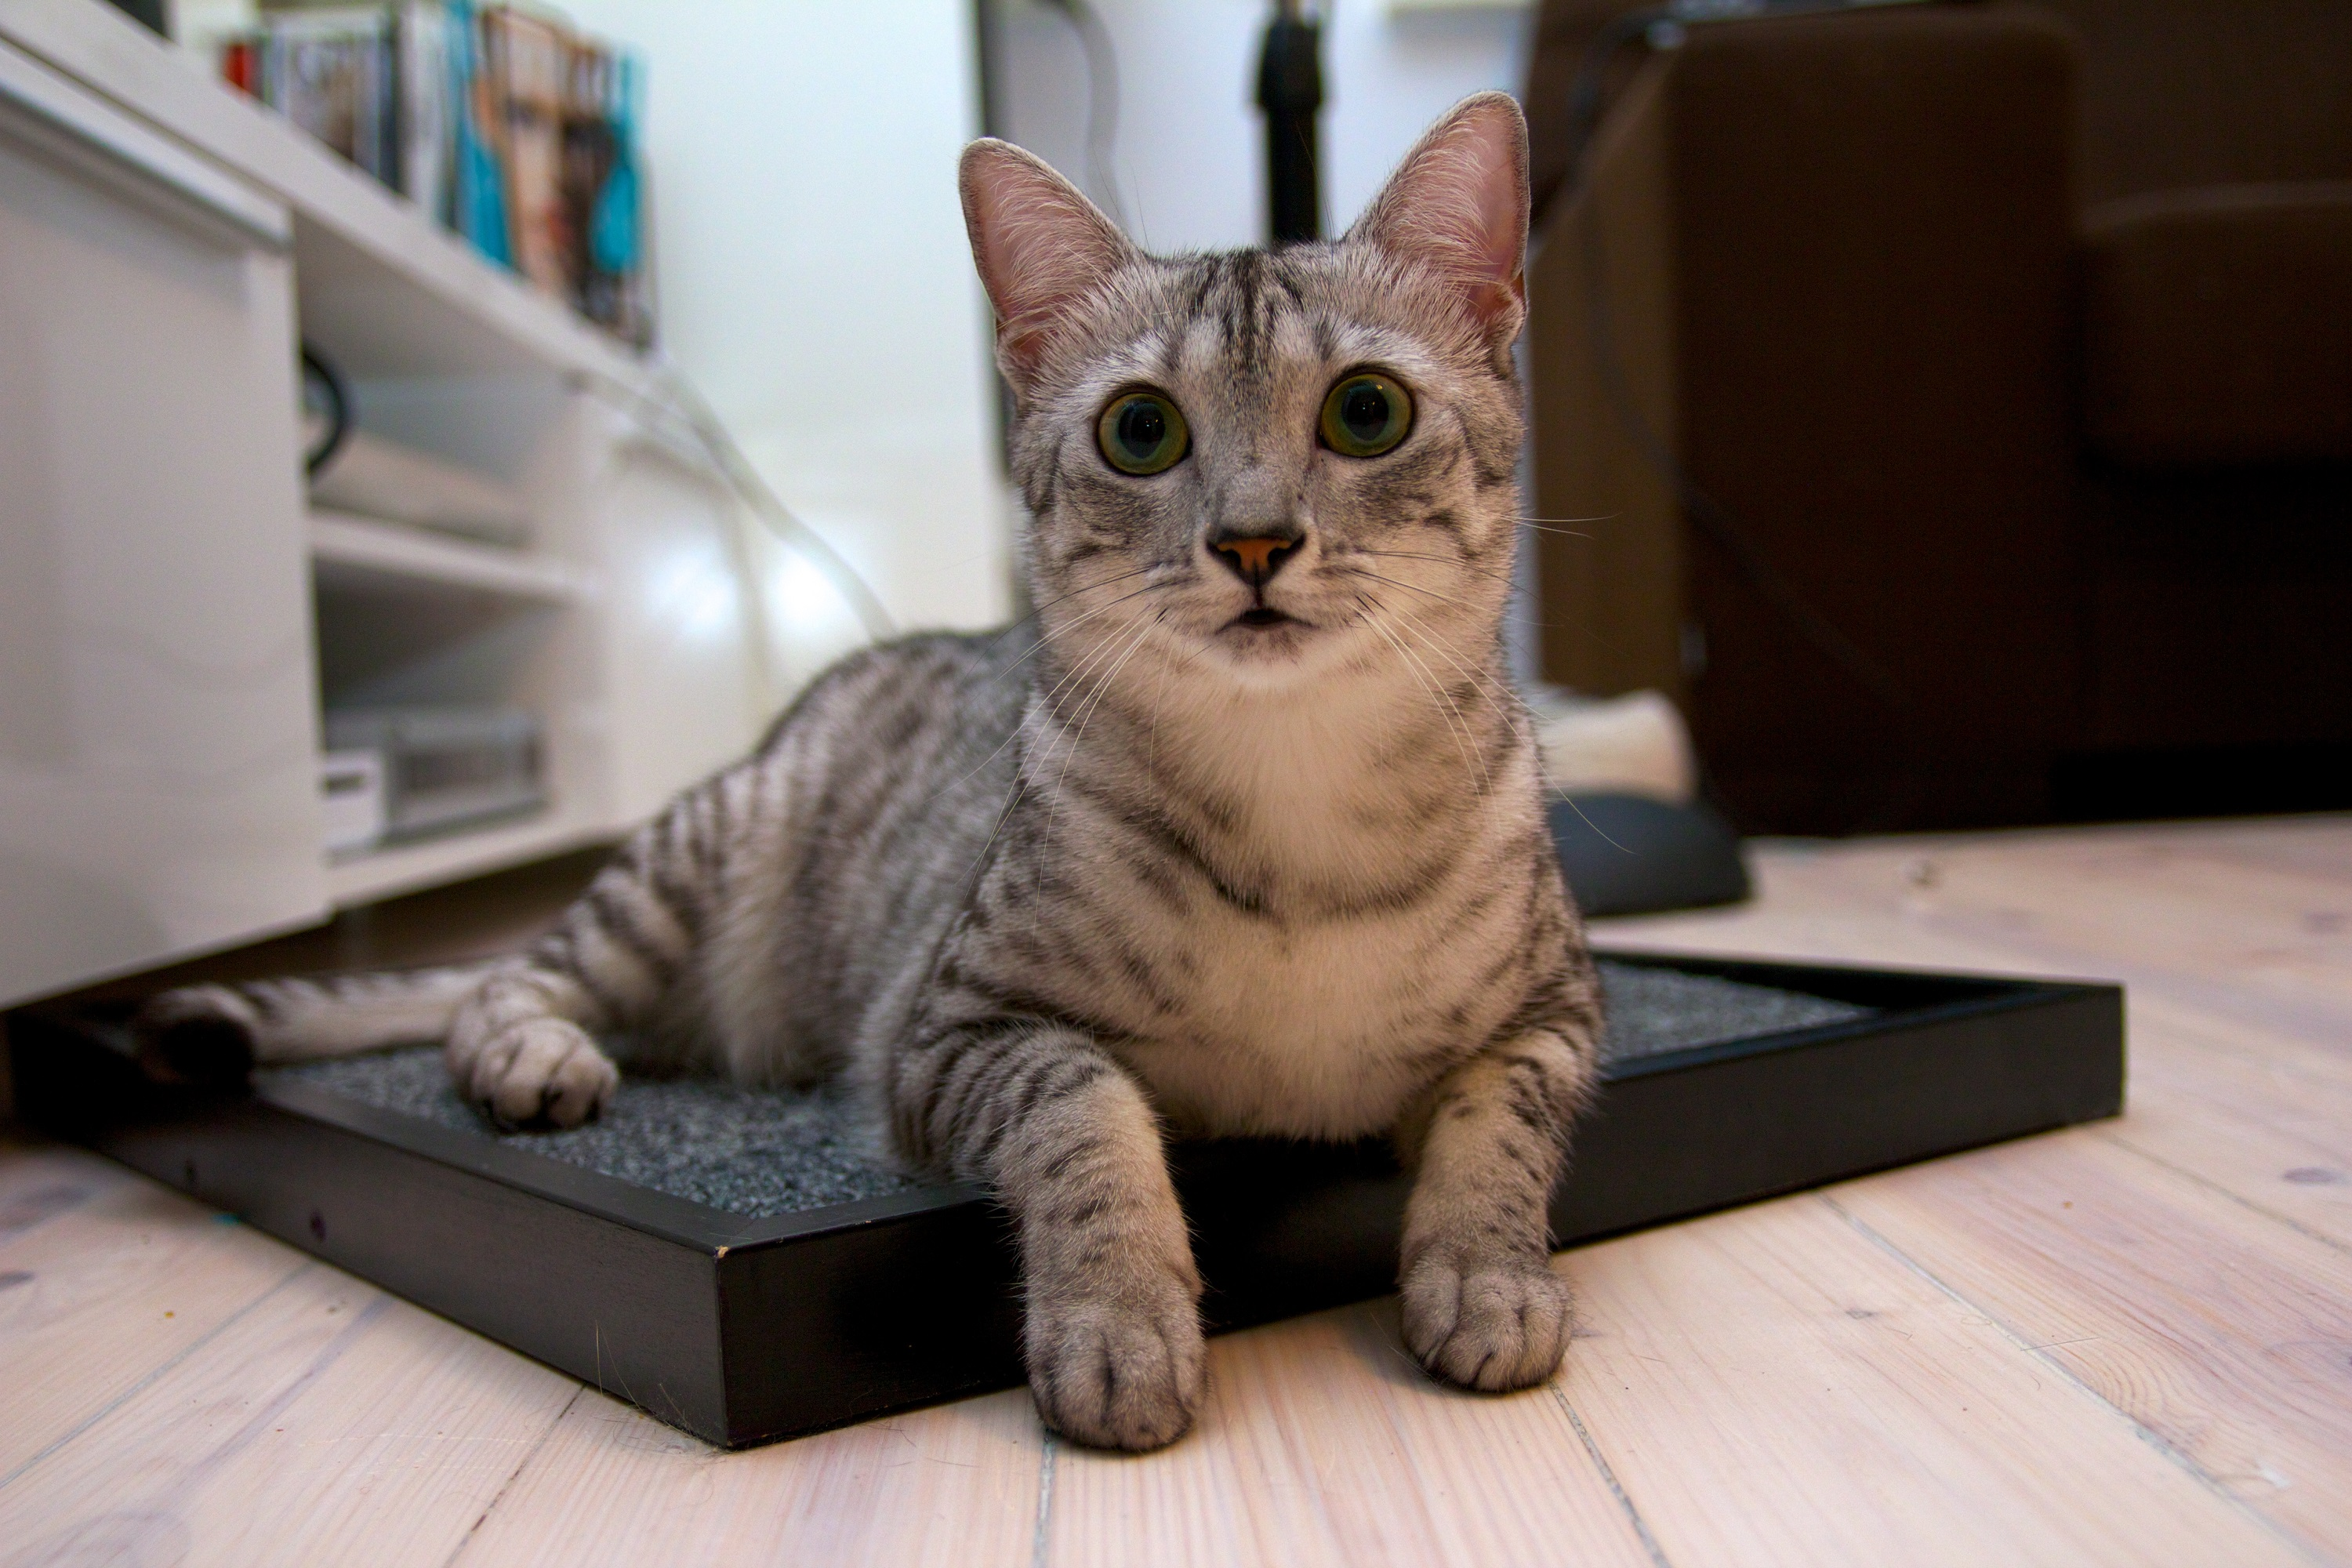 Meet the Elite Athlete of the Cat World – the Popular Egyptian Mau